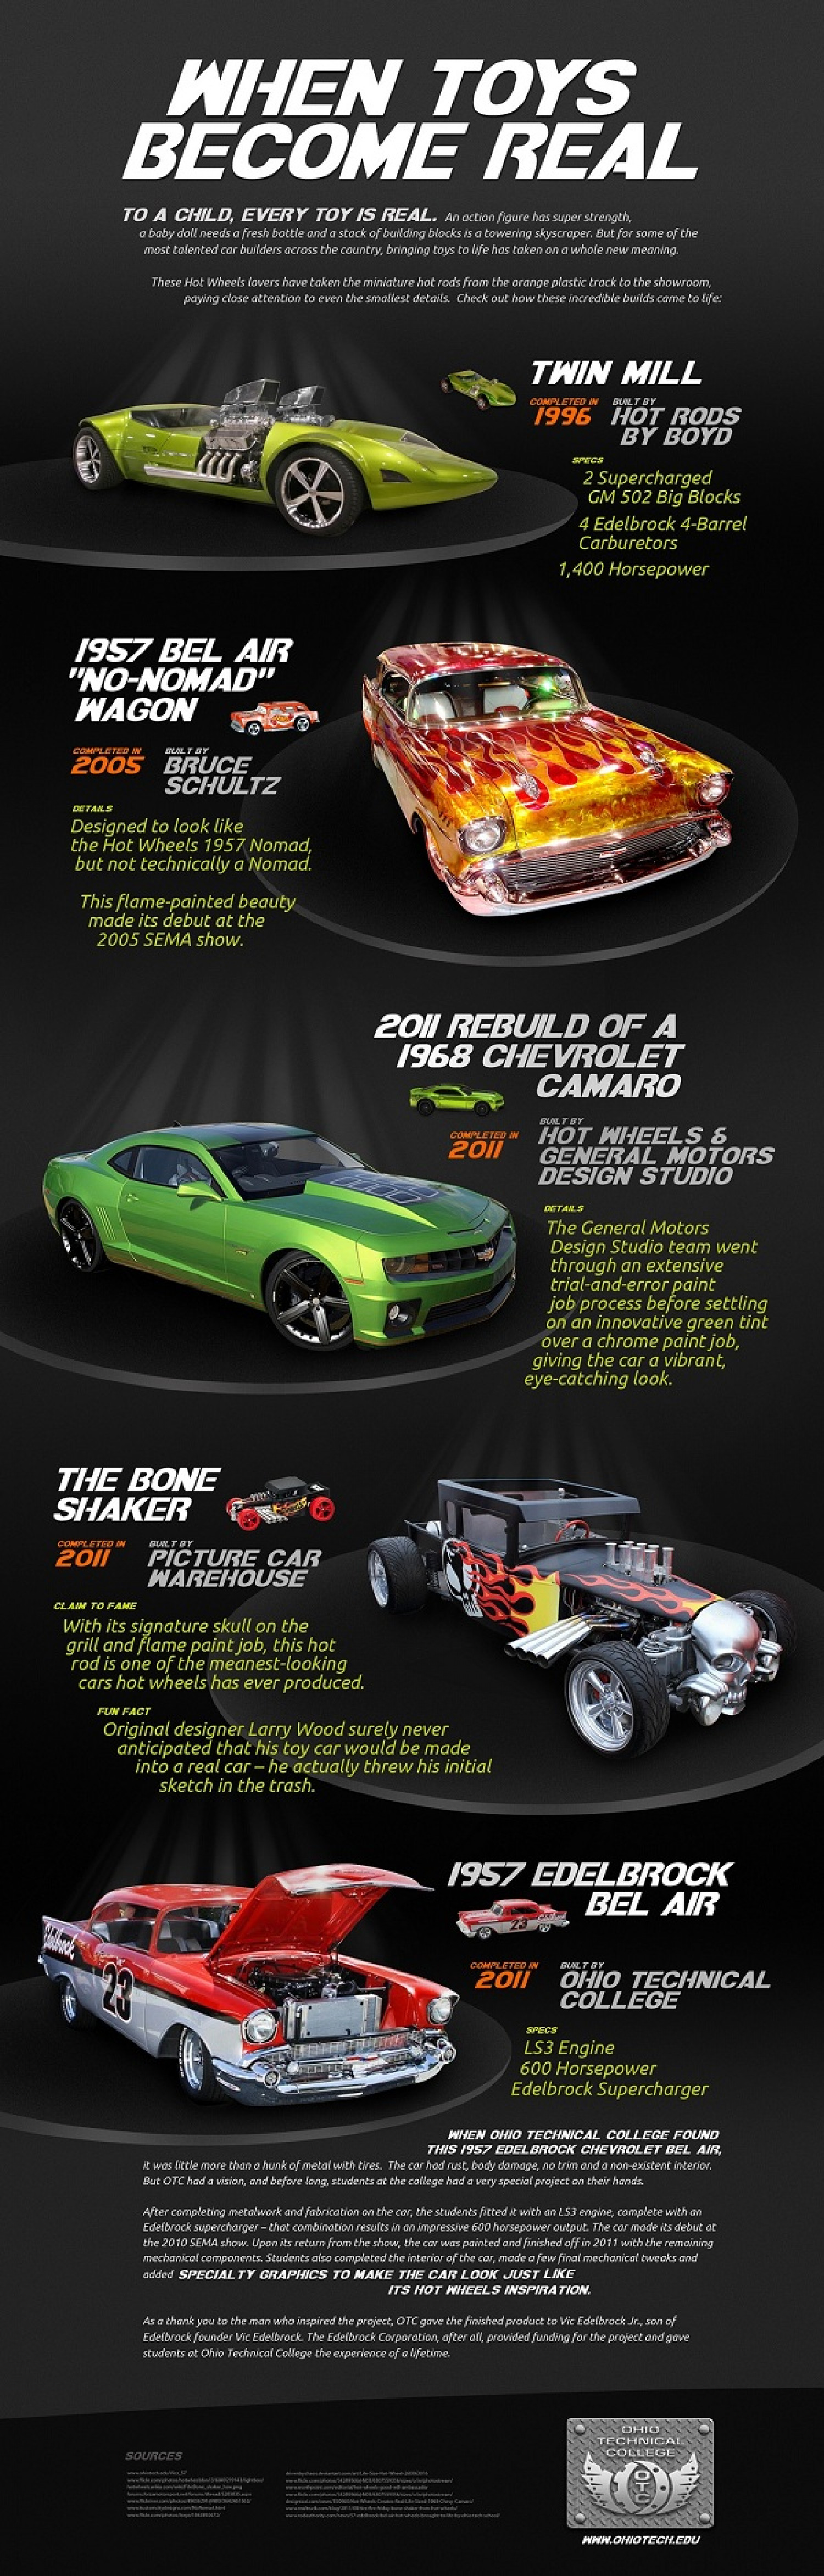 When Toys Become Real Infographic